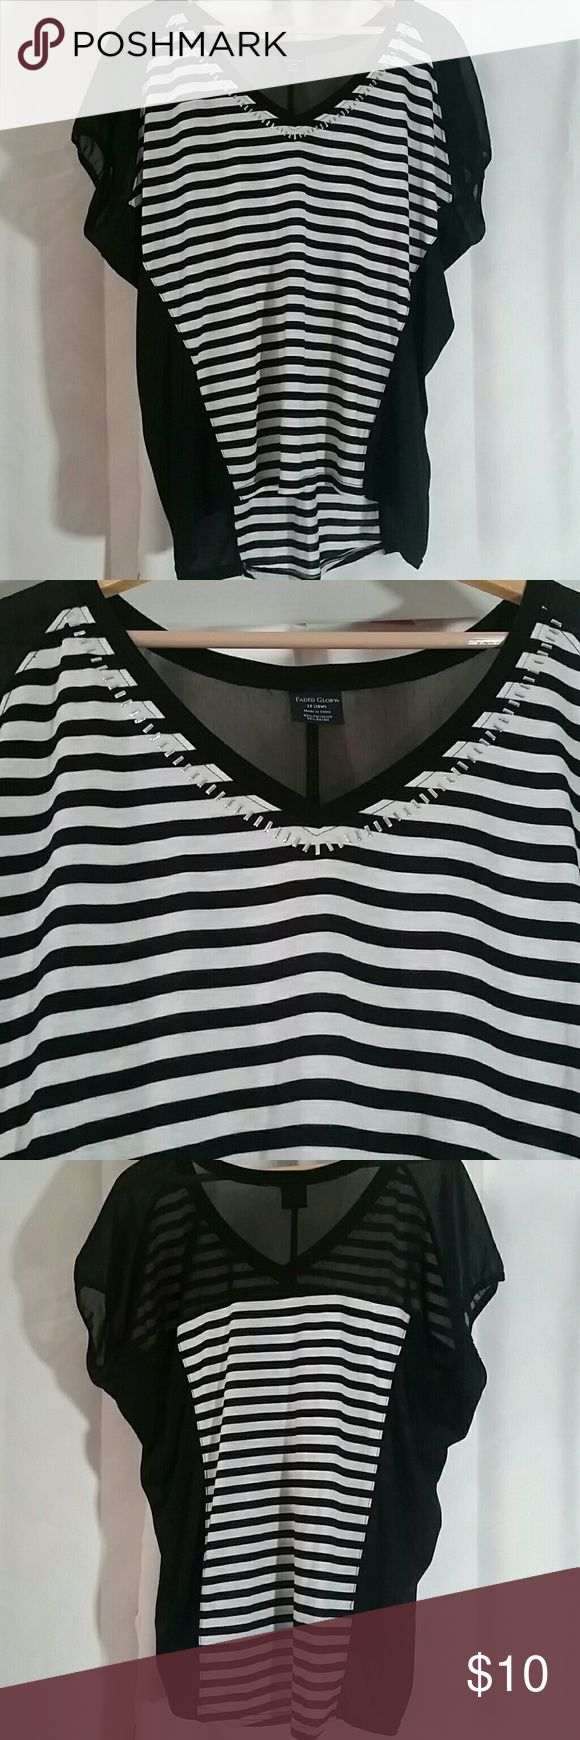 BLACK AND WHITE STRIPPED SHIRT BLACK AND WHITE STRIPPED SHIRT with silver studs around the neck area Faded Glory Tops Tees - Short Sleeve